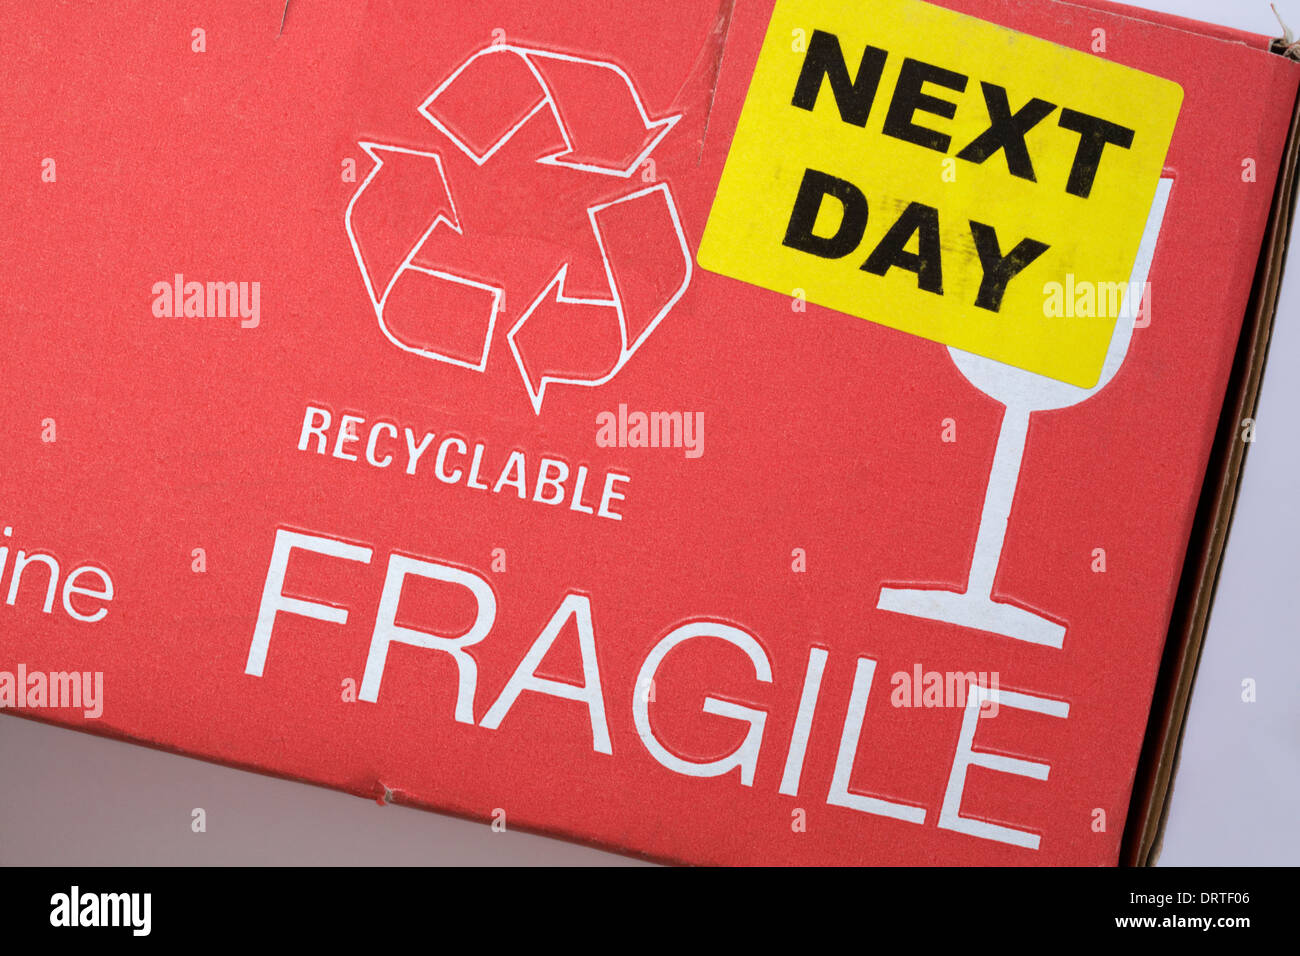 next day sticker, recyclable logo and fragile glass information on cardboard box - Stock Image